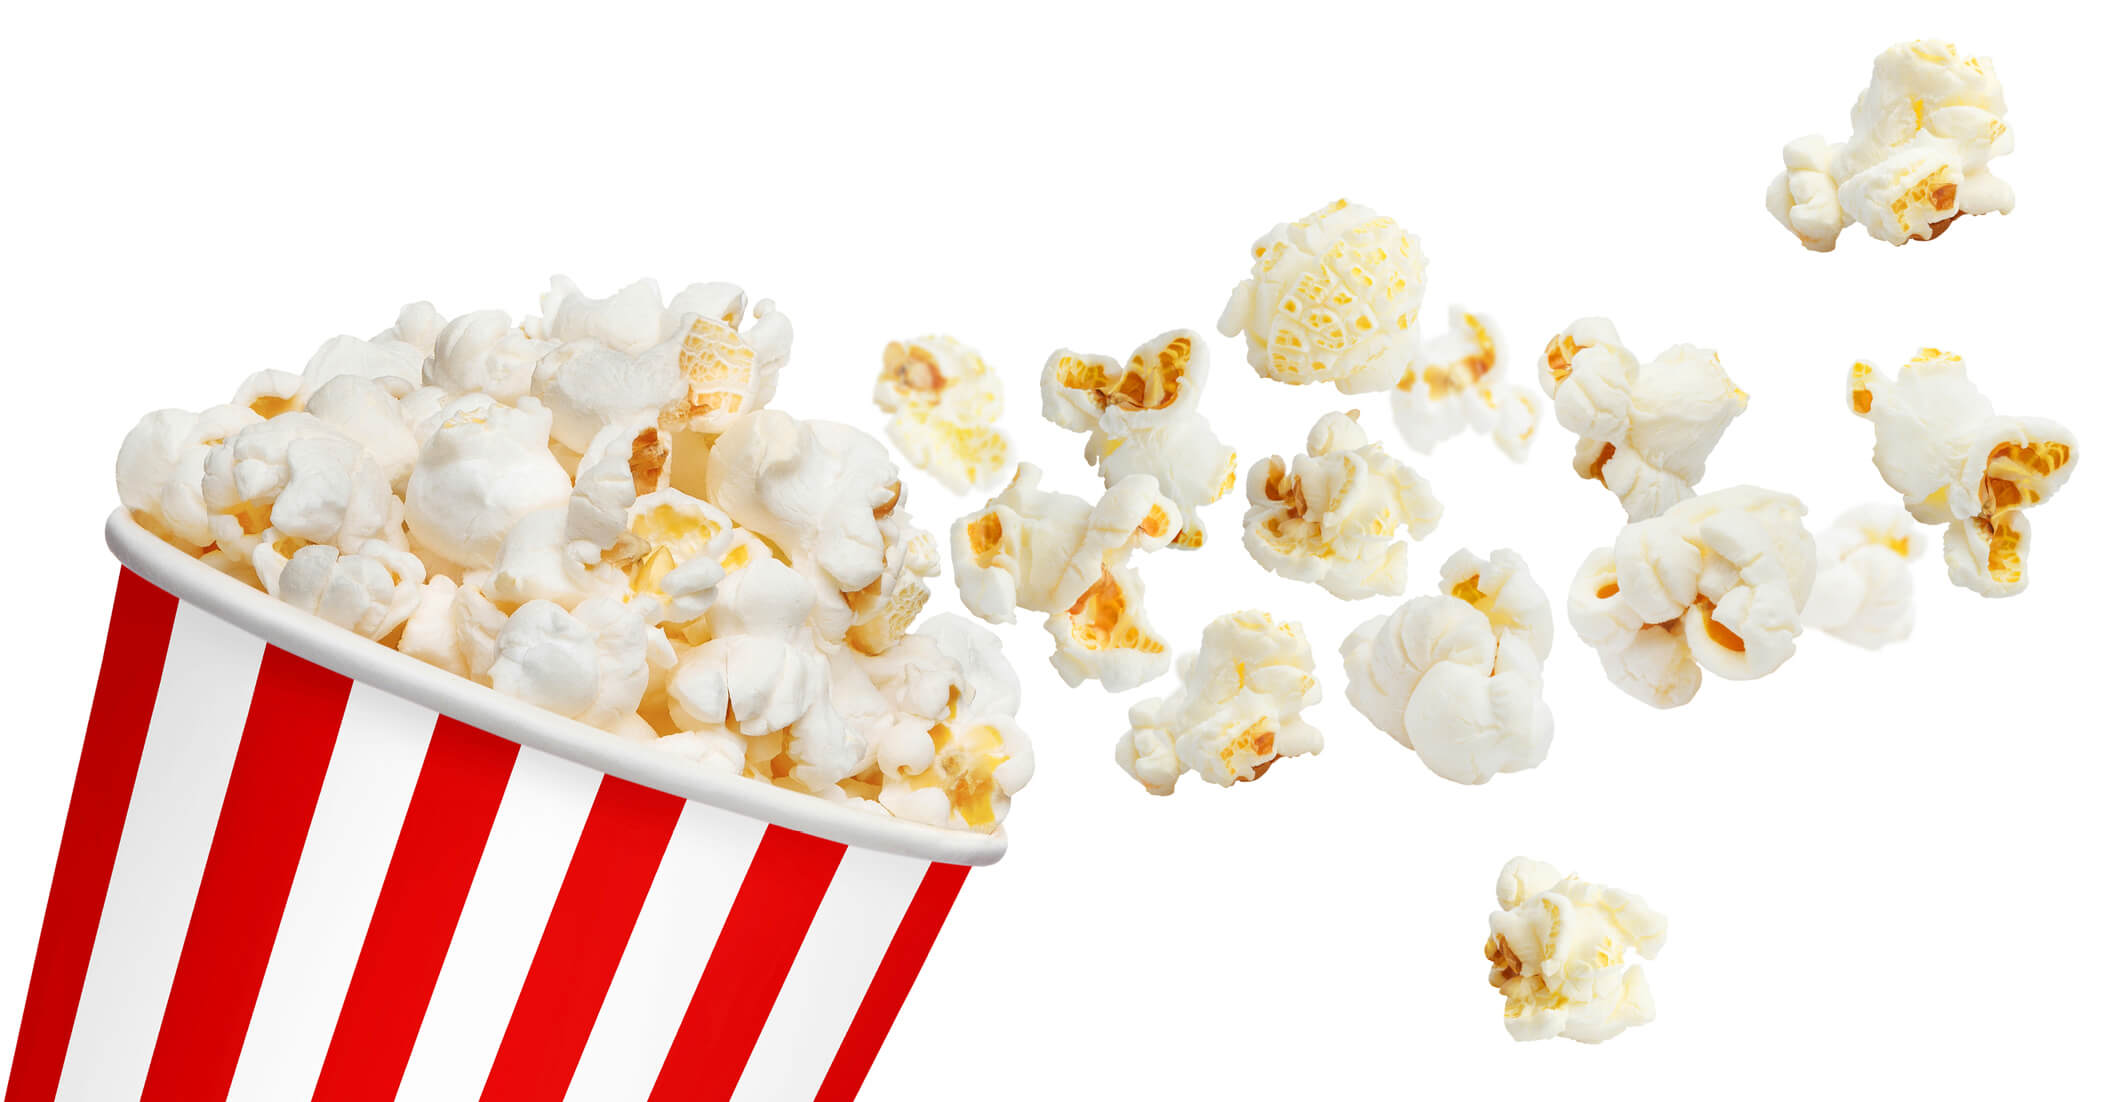 Here is what a bag of popcorn can teach us about product pricing